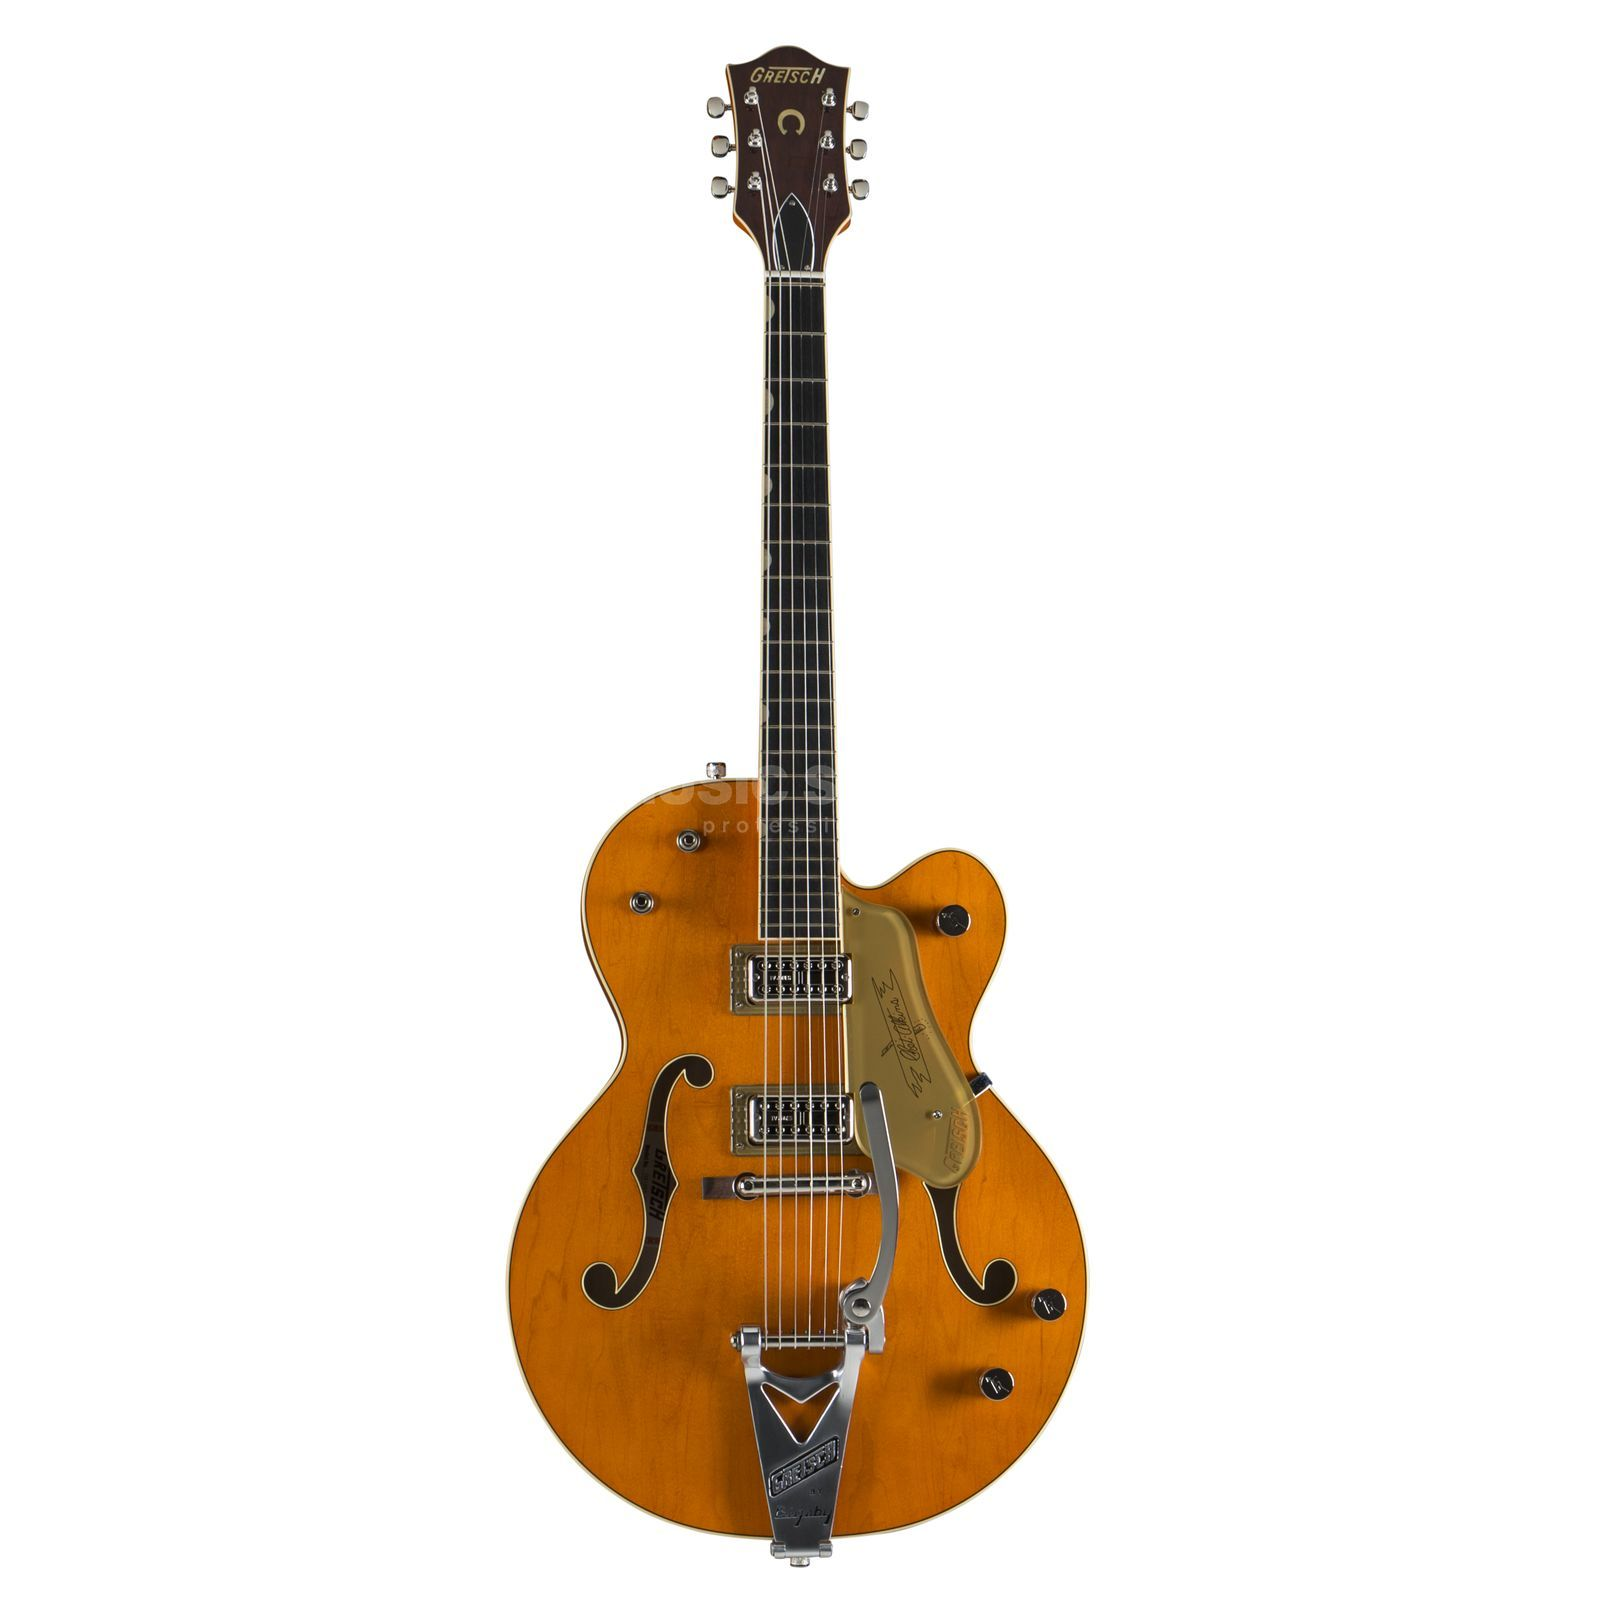 Gretsch G6120T-59 VSE Chet Atkins Hollow Body Bigsby Vintage Orange Stain Lacquer Produktbillede